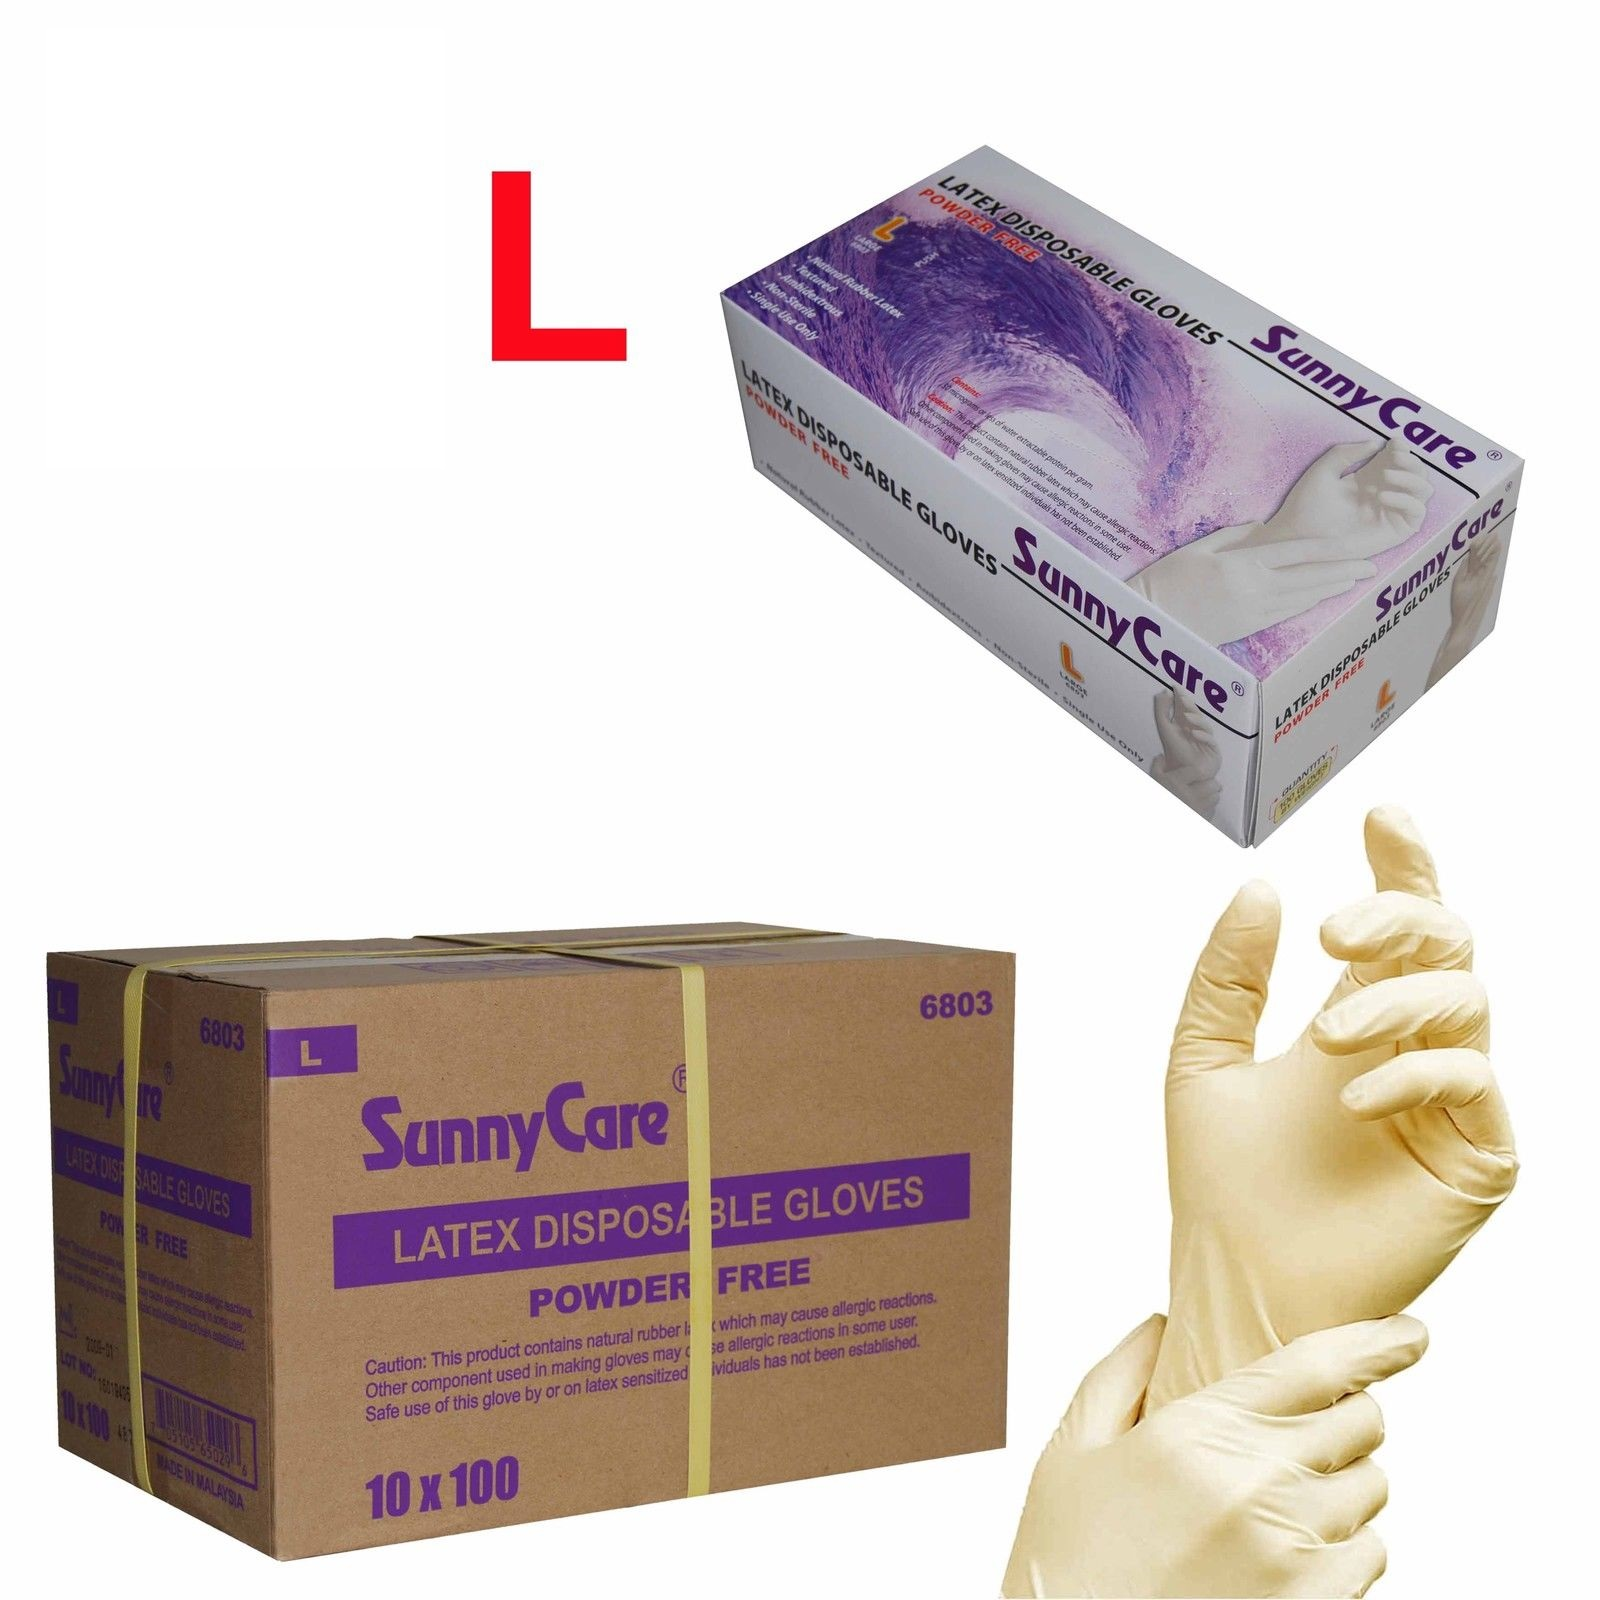 Sunnycare 174 Sunnycare 174 Latex Disposable Gloves Large